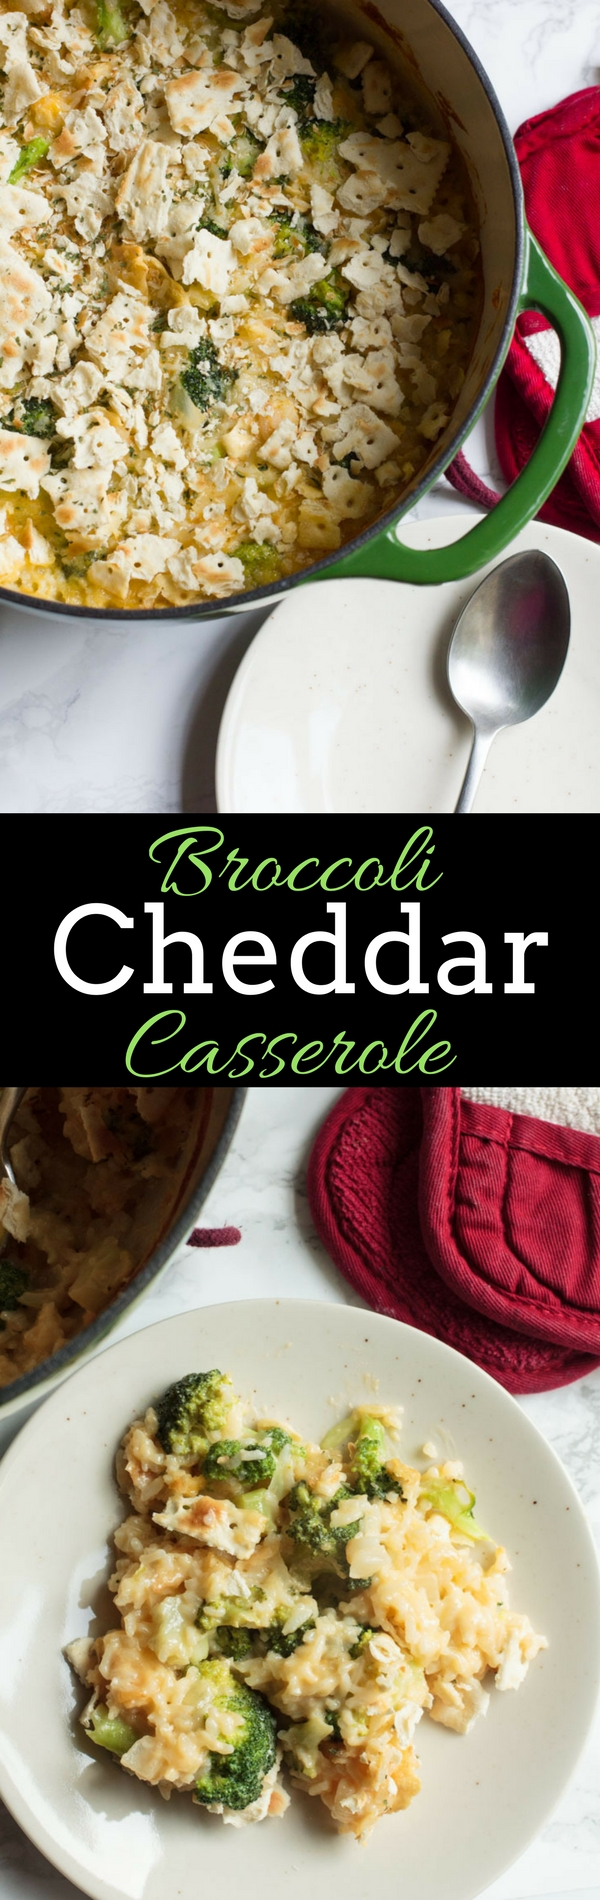 Broccoli Cheddar Casserole is a family favorite - perfect for a weeknight or as a holiday side.